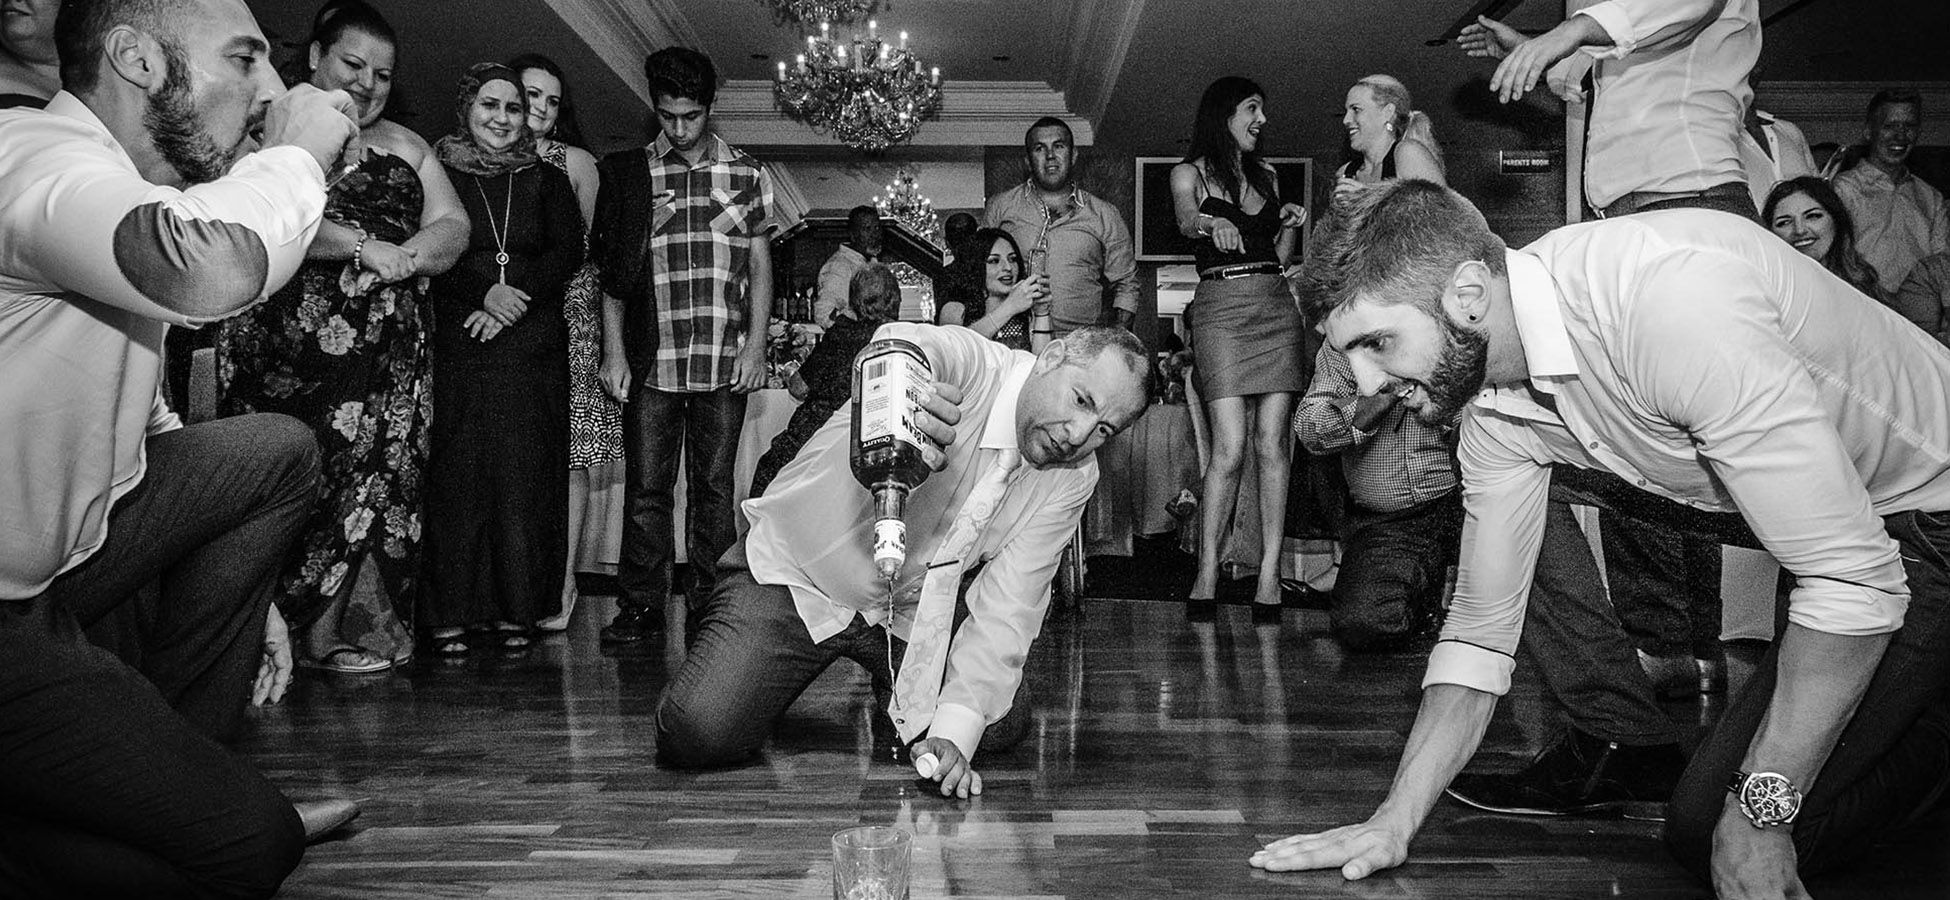 Sydney-Wedding-Video-&-Photography-at-a-Greek-wedding-pouring-bourbon-on-the-dance-floor-with-the-groom-and-his-guests